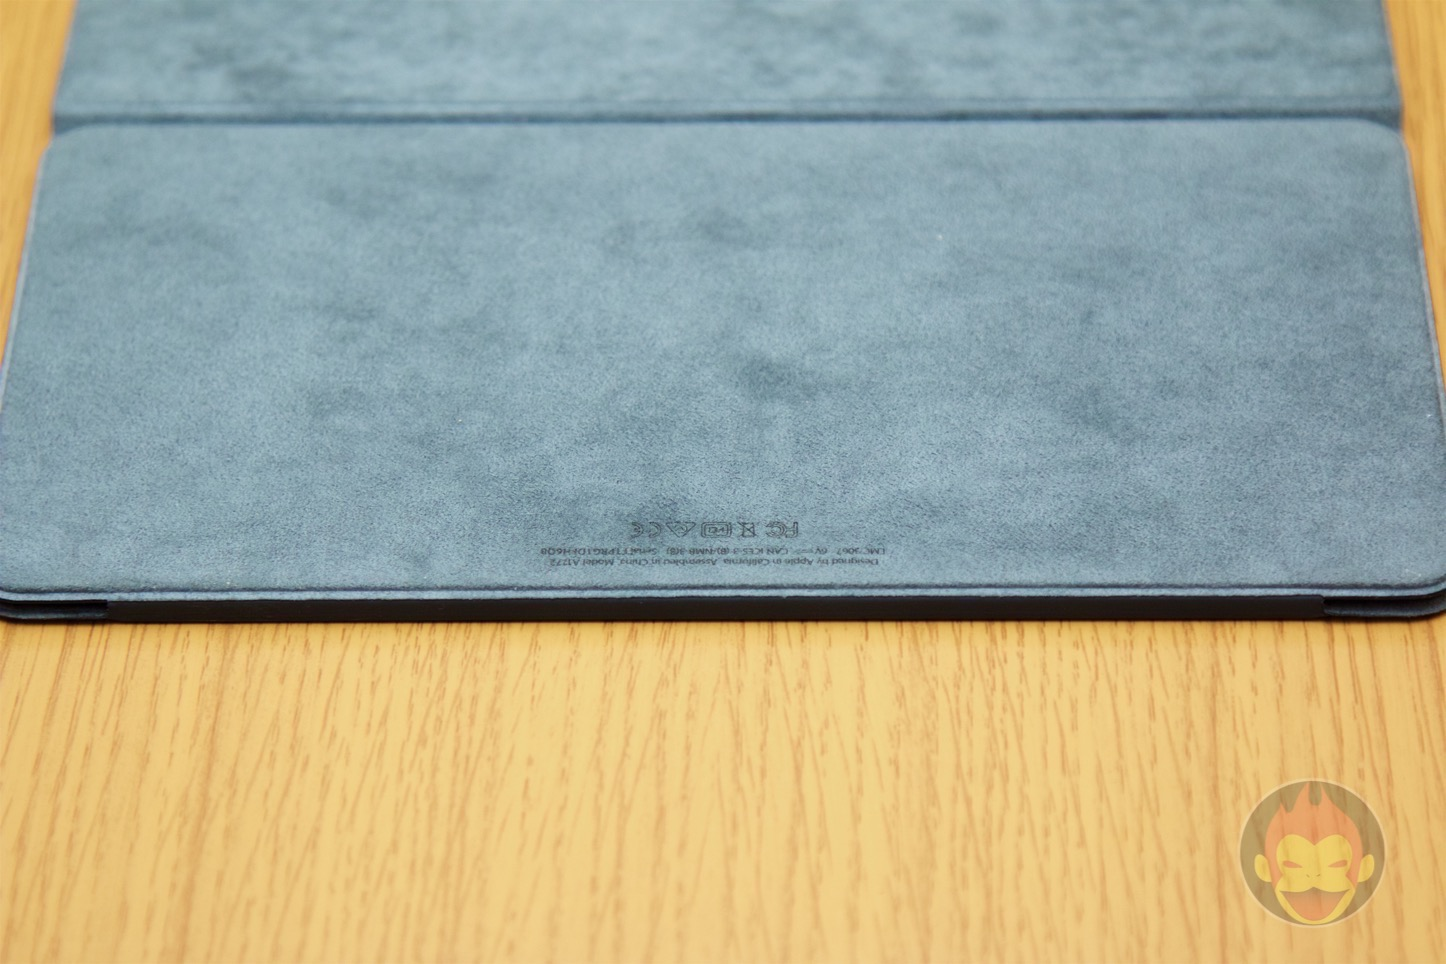 iPad-Pro-Space-Gray-128GB-Photo-Review-18.jpg